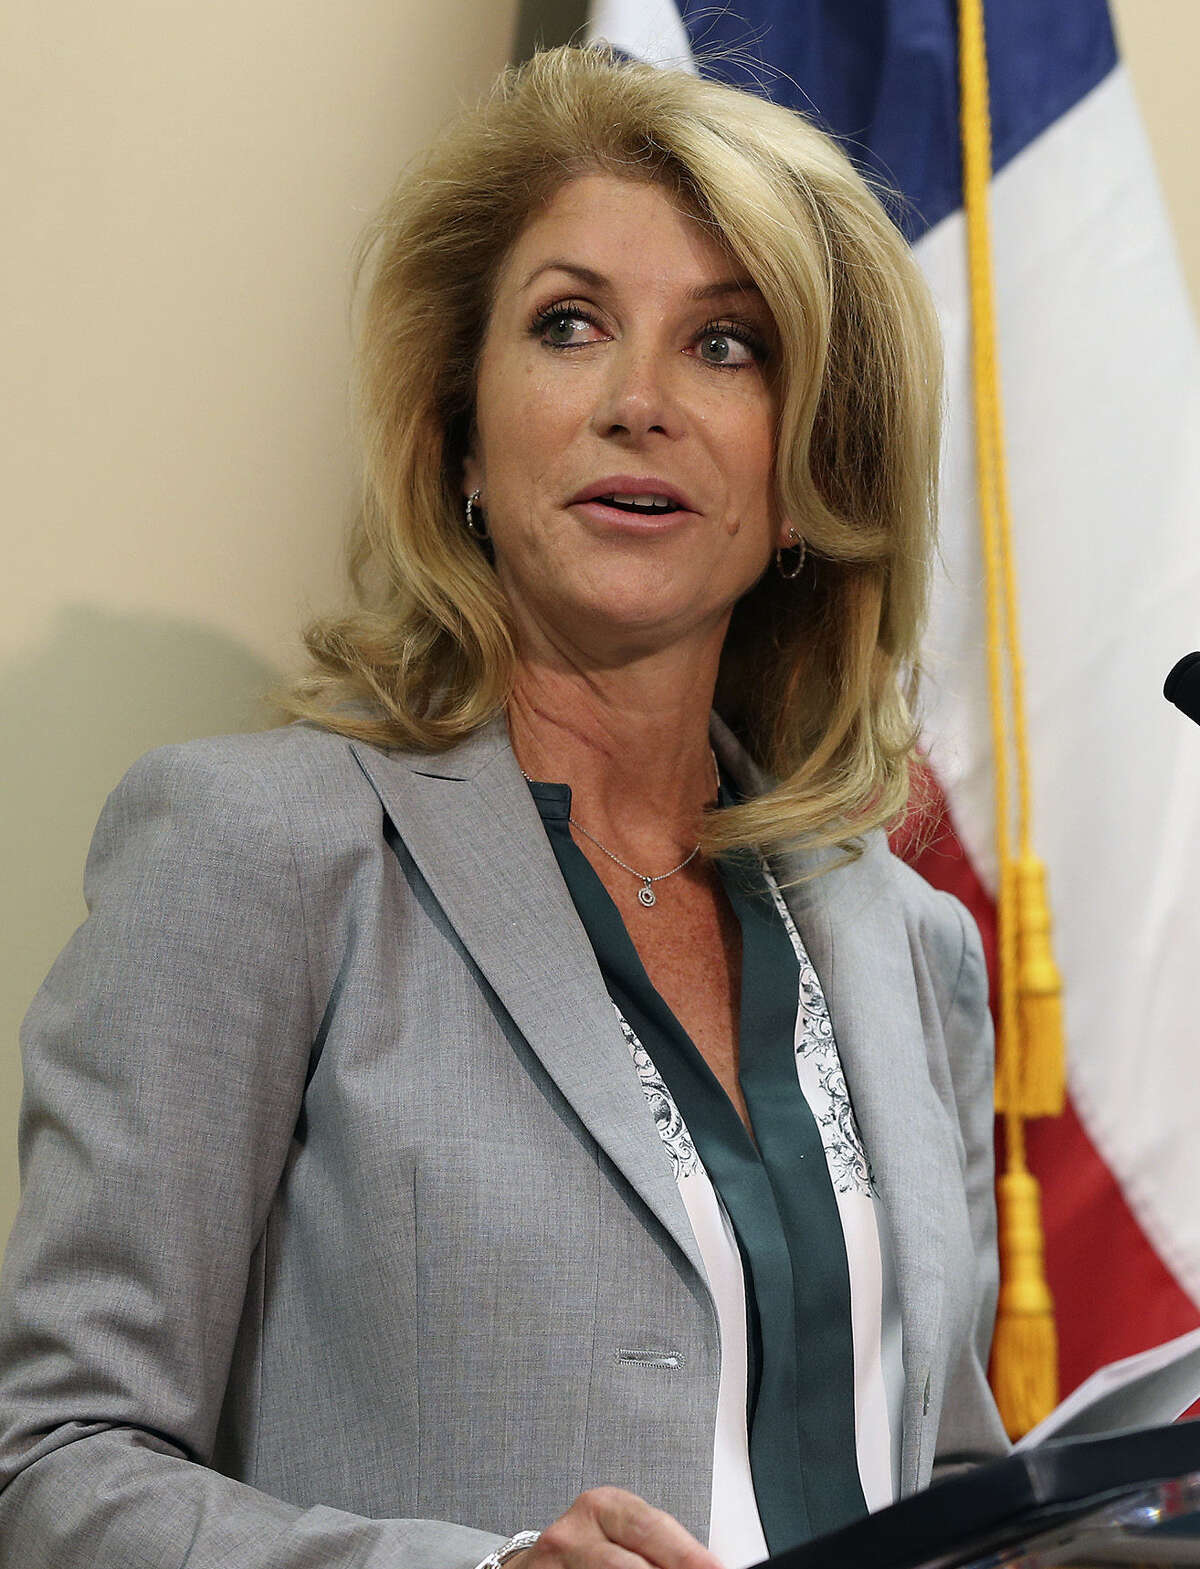 Sen. Wendy Davis has been spending at a pace of about $1 million a week on TV ads from Aug. 8 to Labor Day.